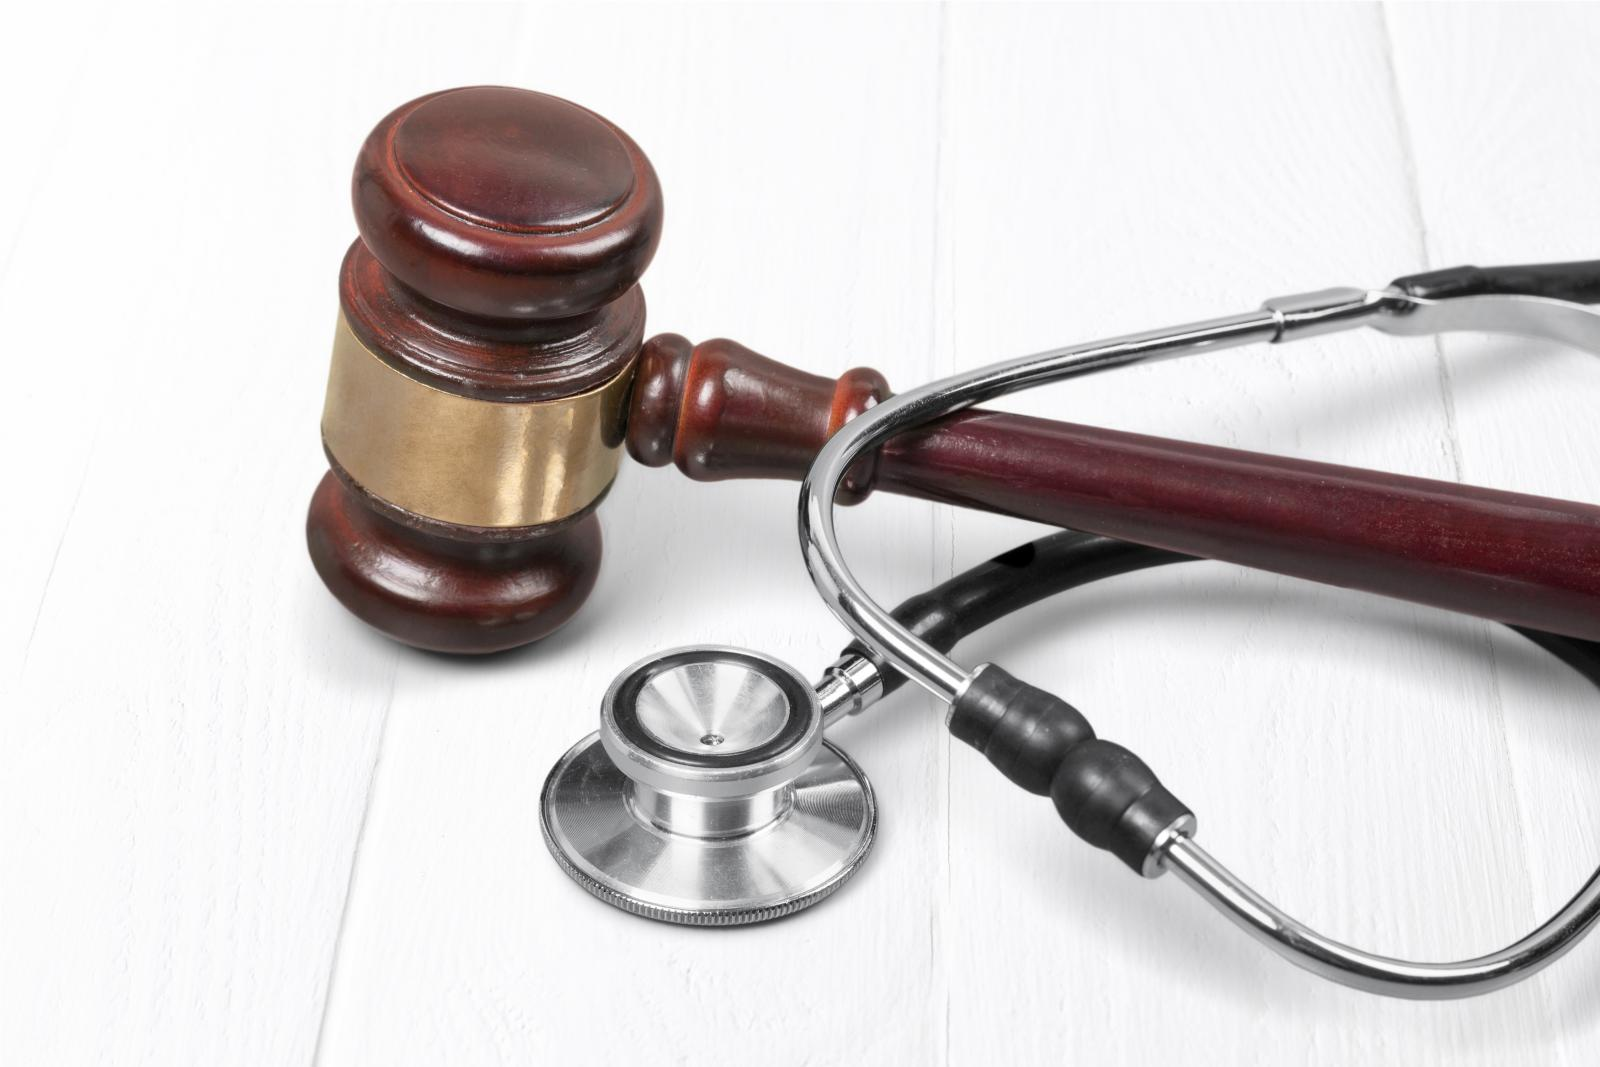 Lawsuit for Slander Against Pharmacists Based on Comments About a Physician